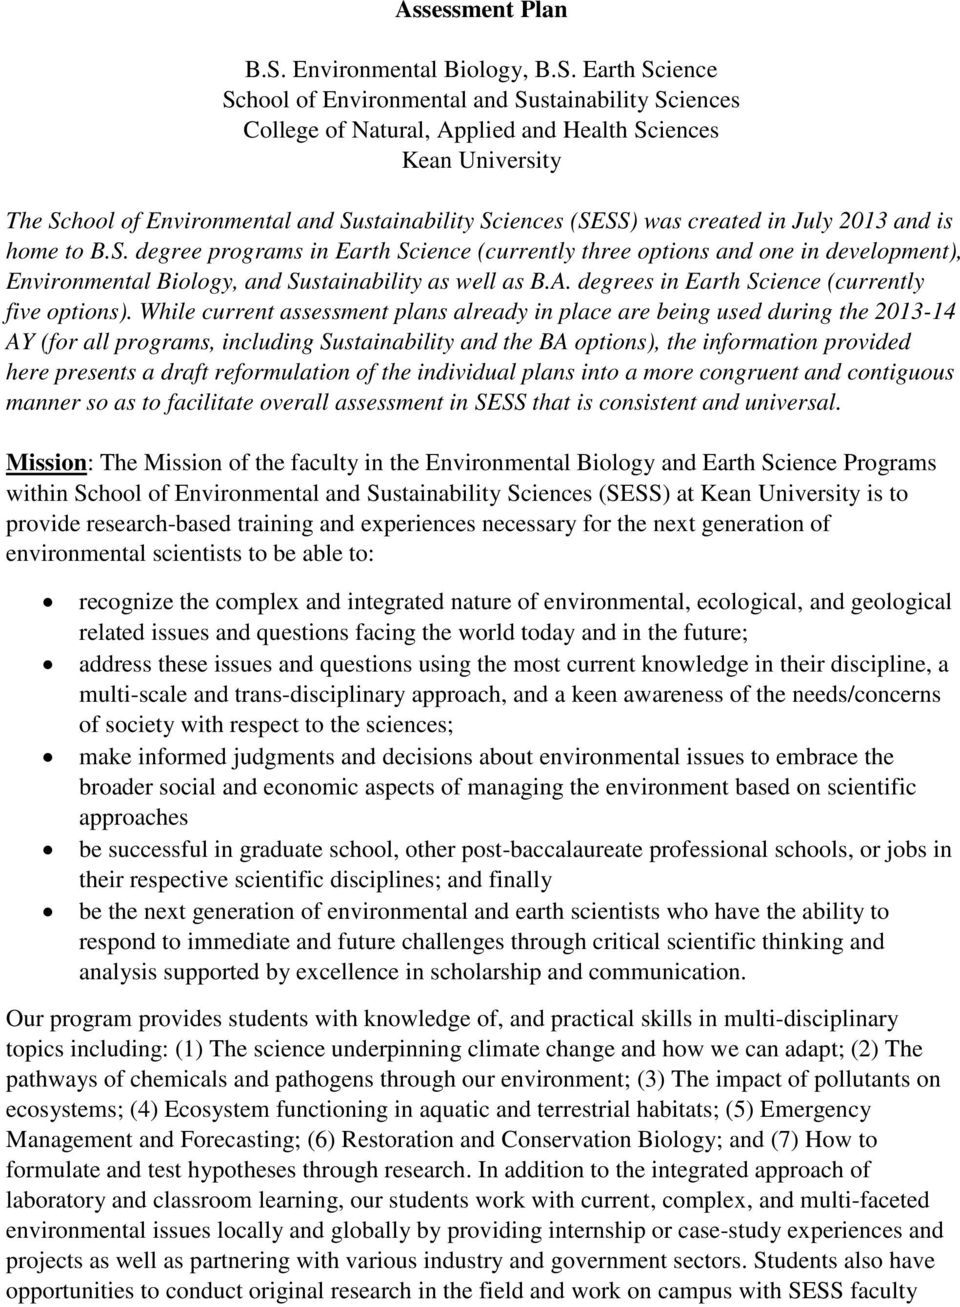 Earth Science School of Environmental and Sustainability Sciences College of Natural, Applied and Health Sciences Kean University The School of Environmental and Sustainability Sciences (SESS) was